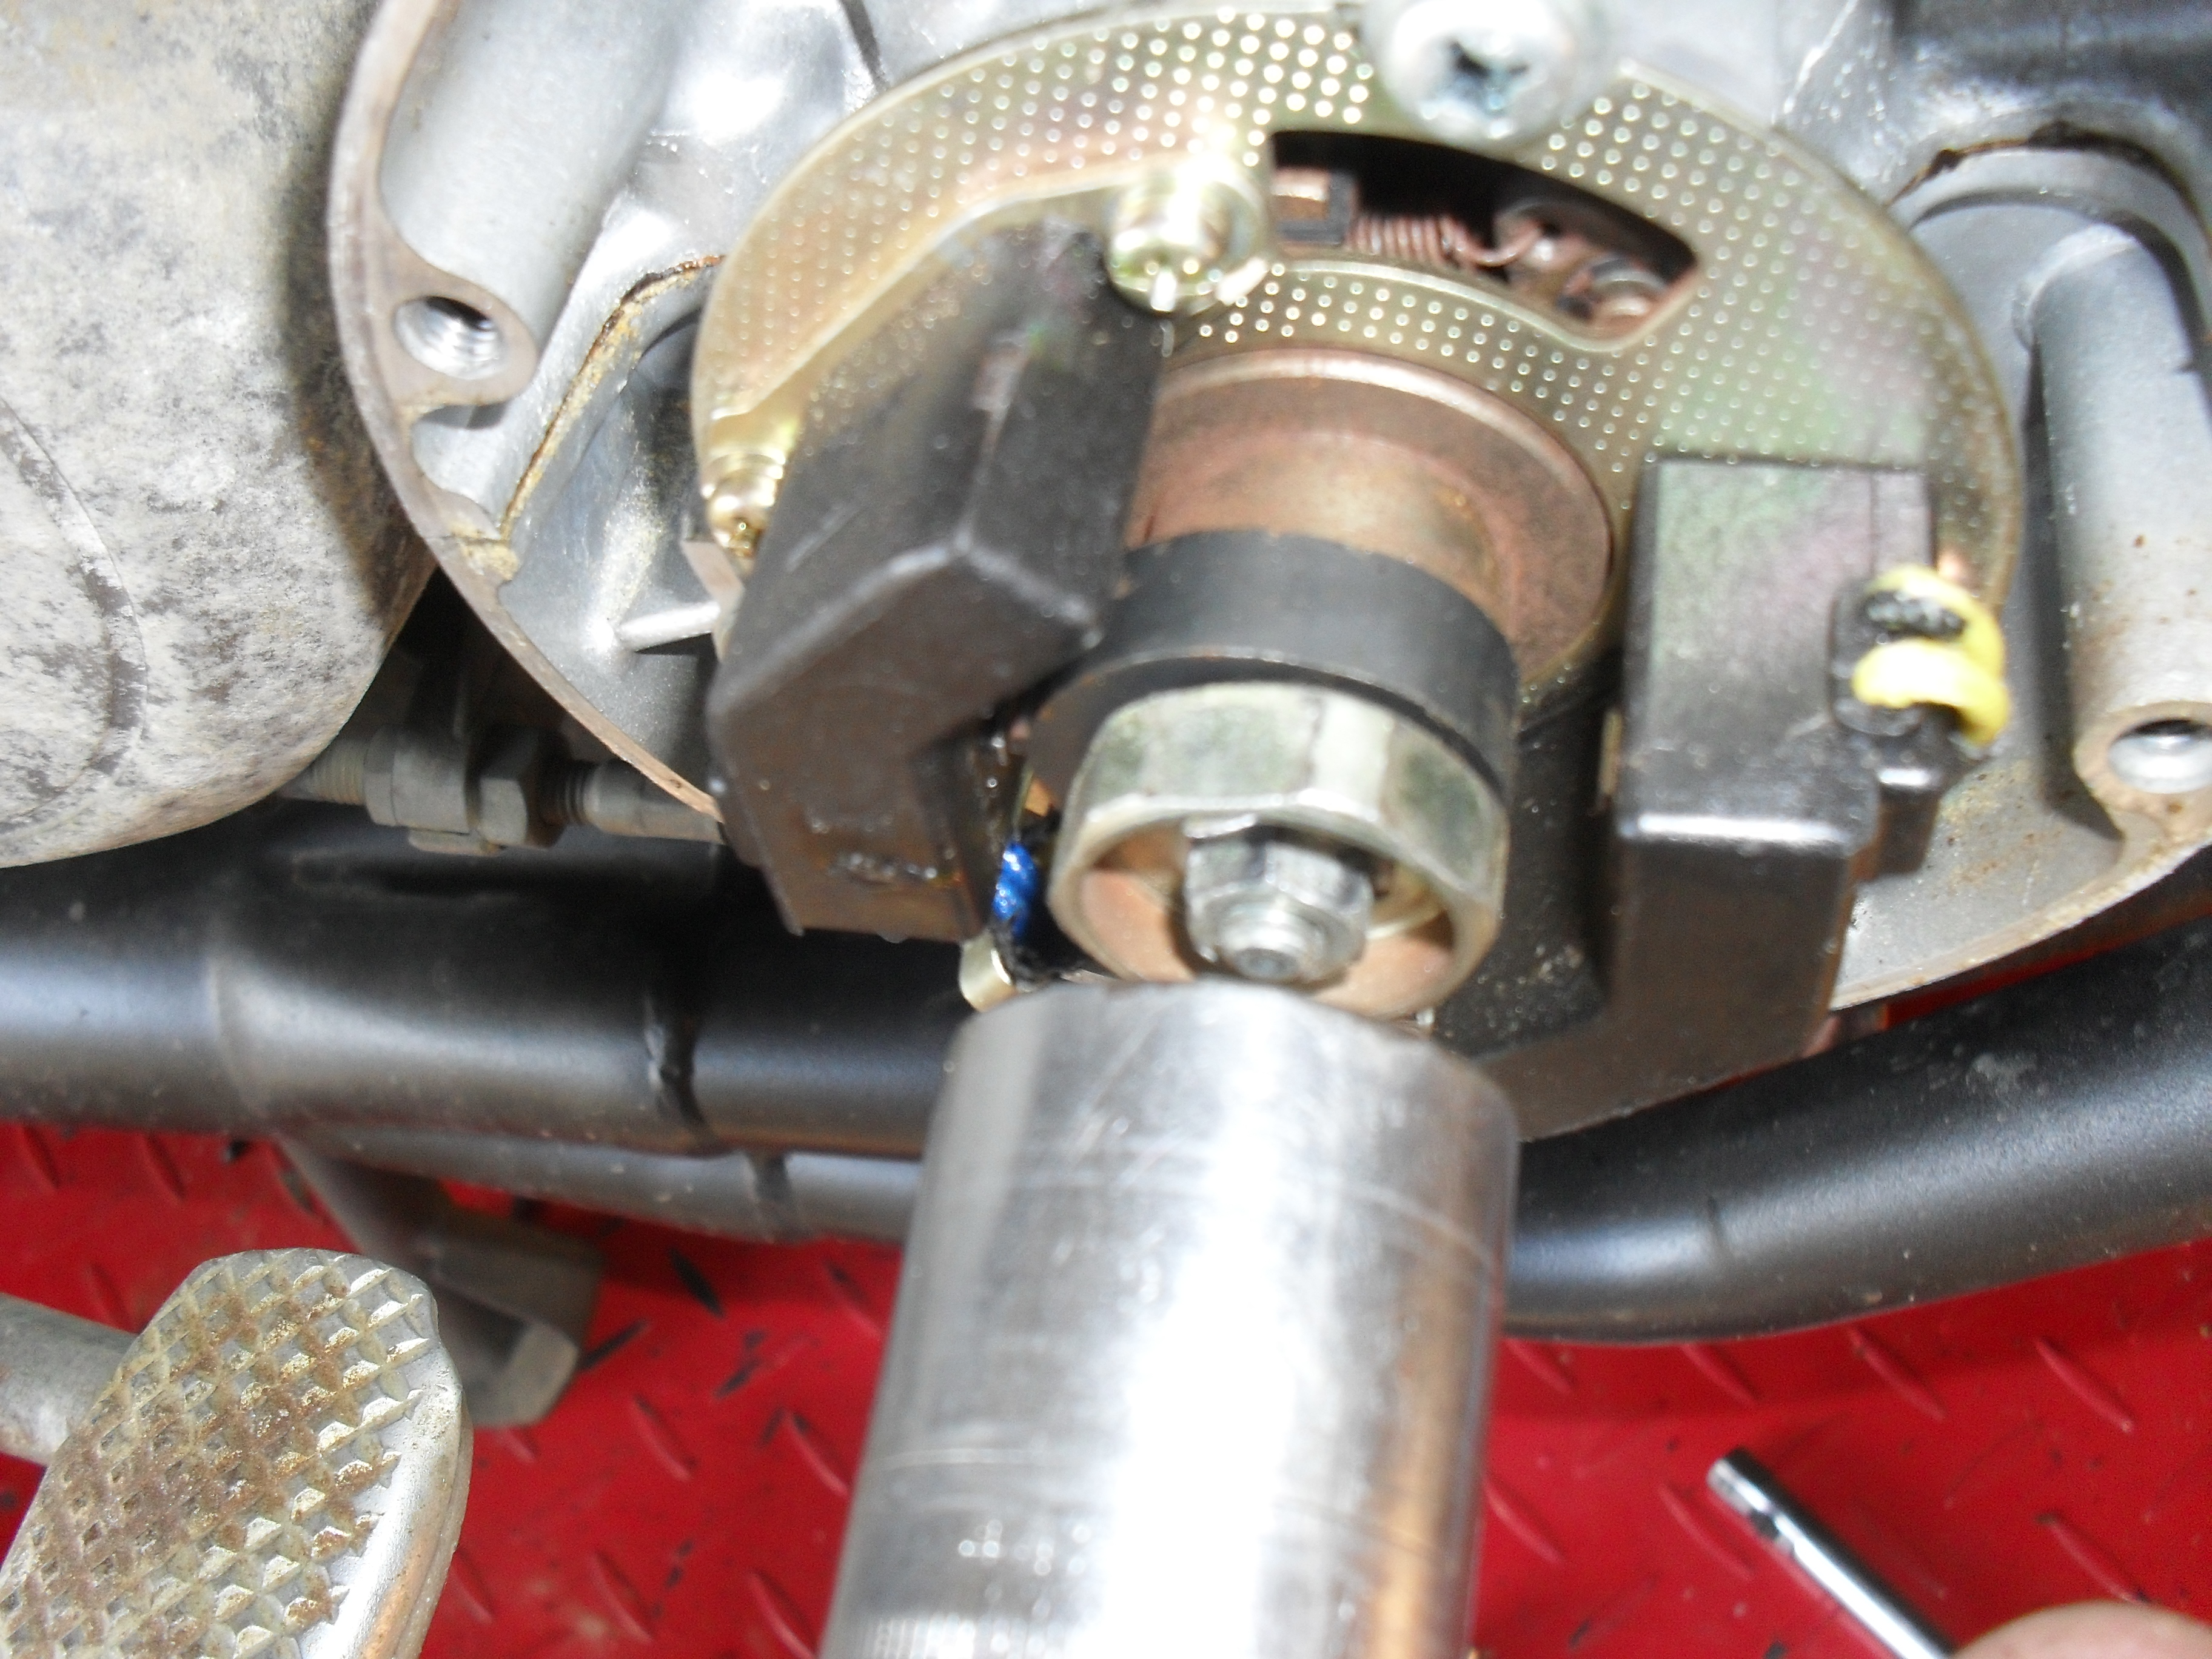 How To Adjust Valve Lash (1980 Honda CB650 SOHC) - Motopsyco's Asylum Crazy about motorcycles!